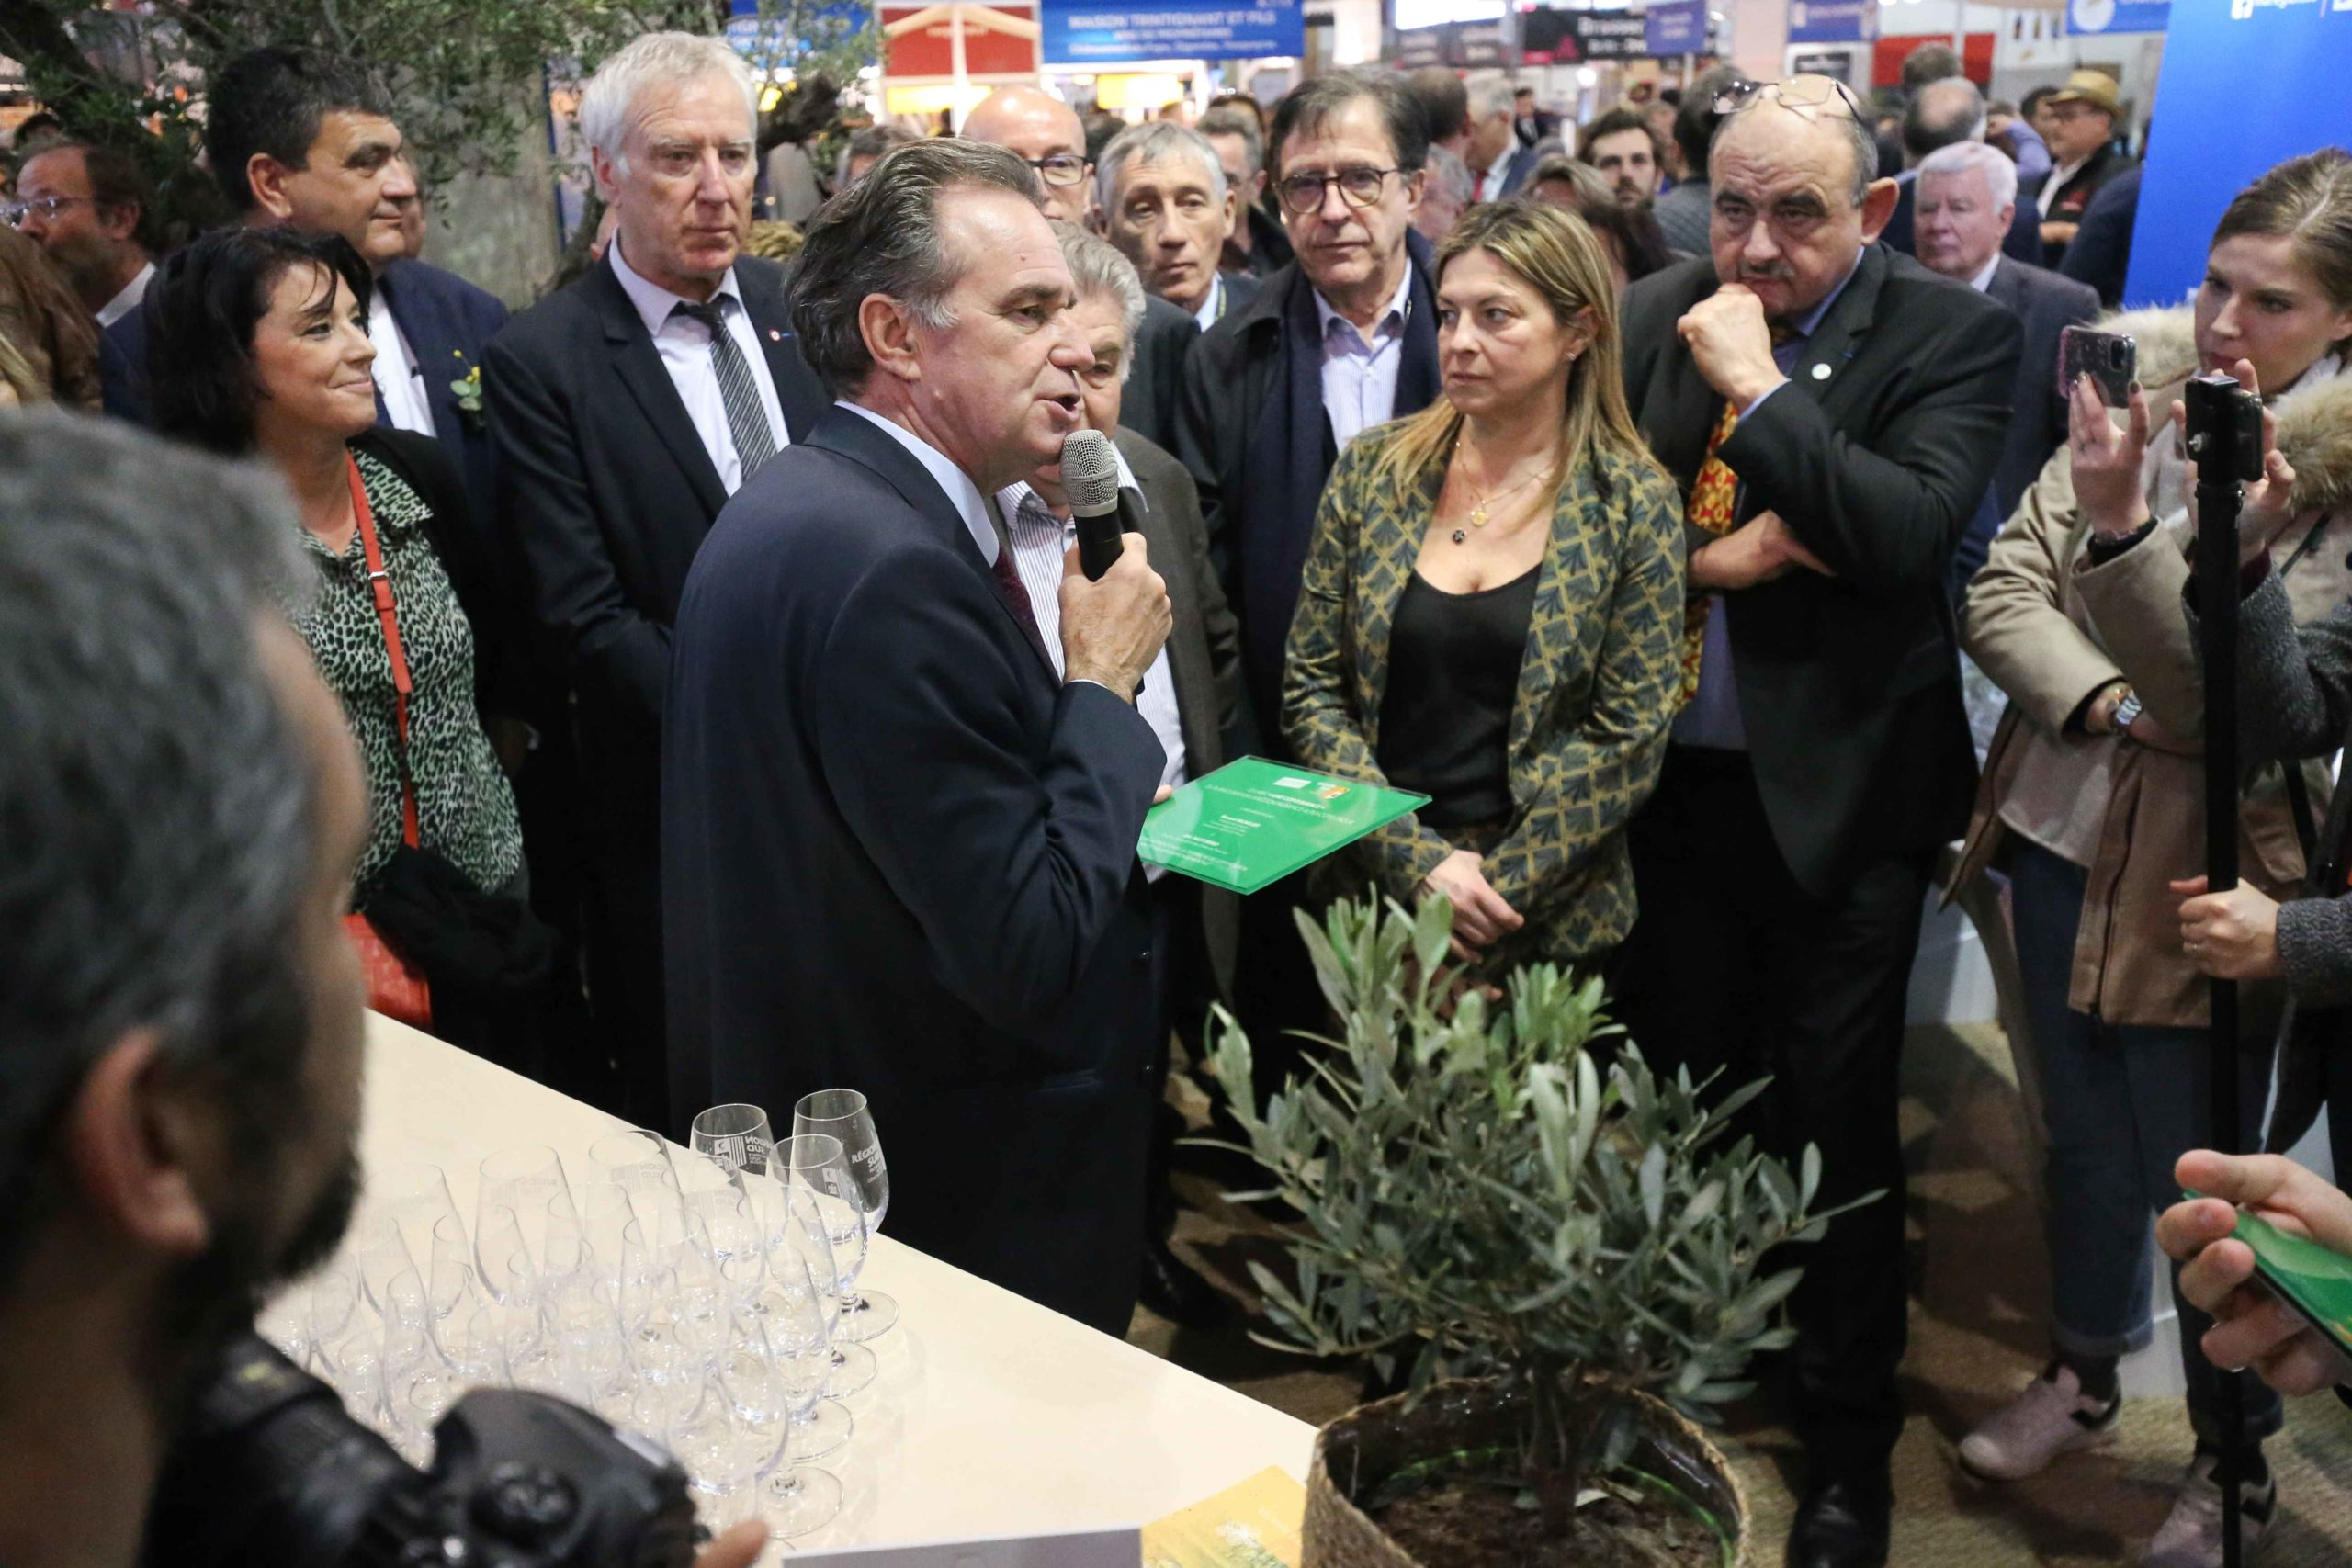 The President of the Regional Council of the Provence-Alpes-Cote-d'Azur region Renaud Muselier (C-L) speaks during the international Agriculture Fair in Paris on February 25, 2020.